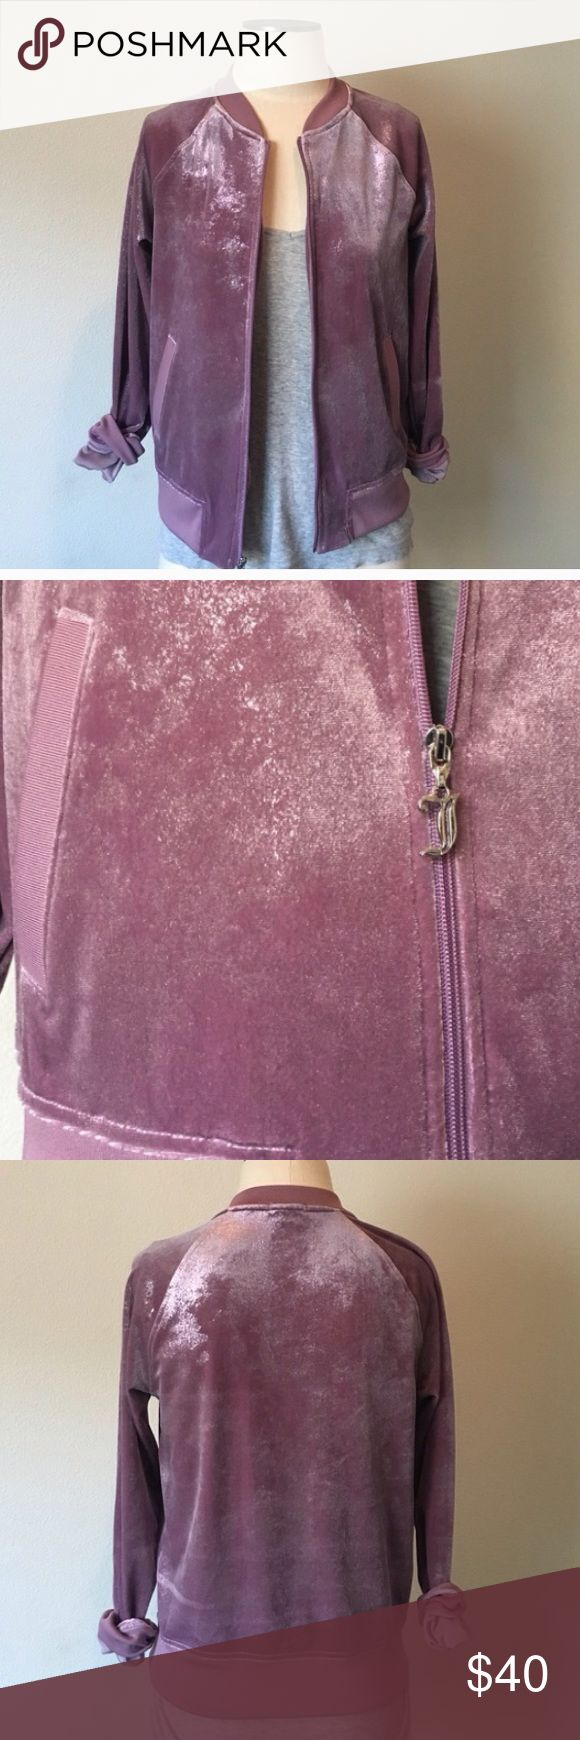 NWOT❗Juicy Couture ️Purple Shimmer Velour Jacket Juicy couture jacket I got and have yet to wear! Been hanging up in my closet. I still very much love it! I may or may not decide to keep it. But im just trying to declutter things I dont use or have yet to and so this made the posh list! If you want to bundle with the matching pants let me know! Juicy Couture Jackets & Coats Blazers